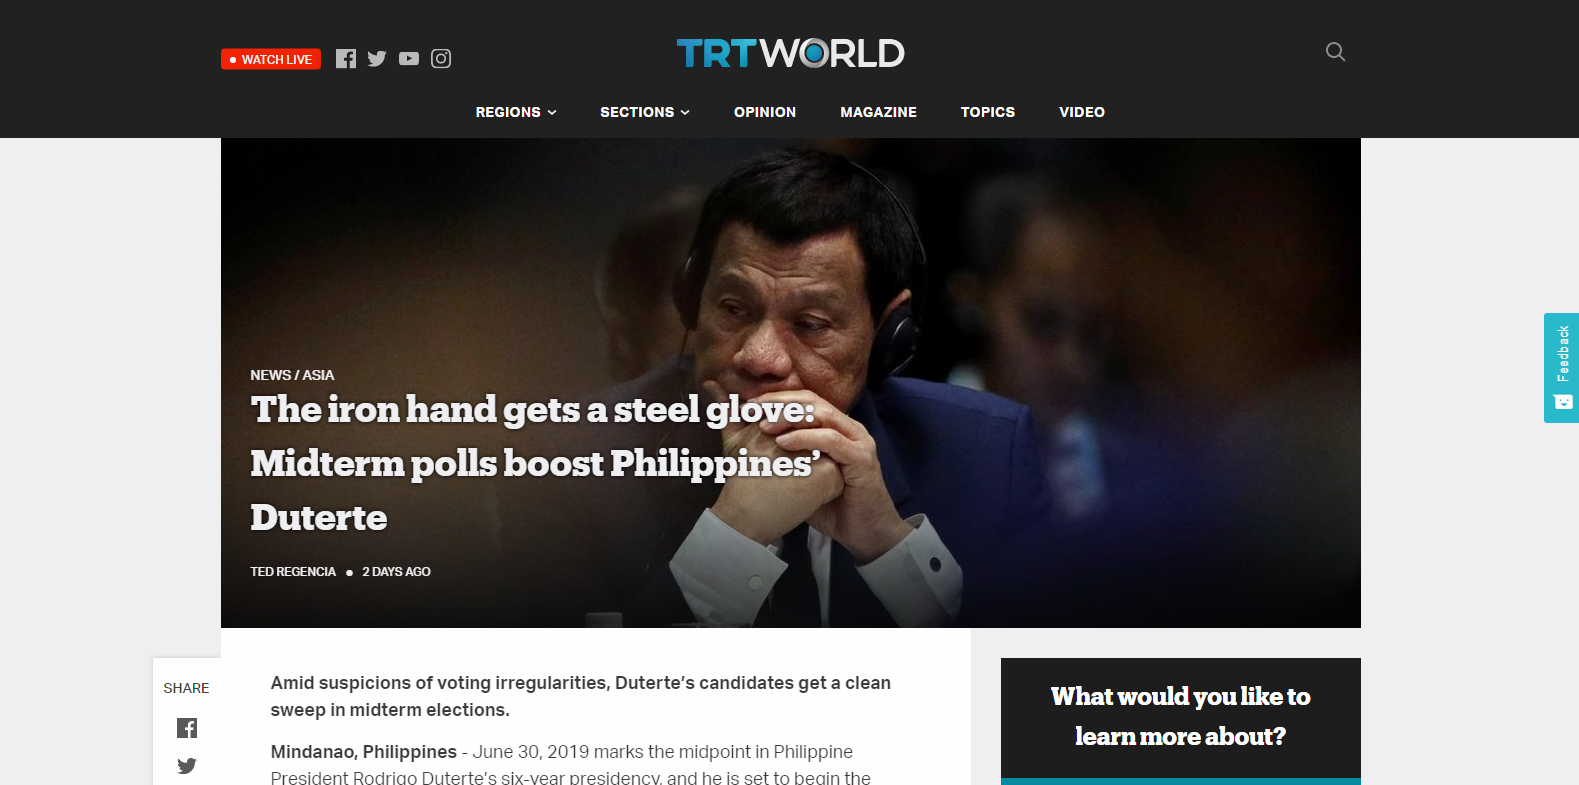 The iron hand gets a steel glove: midterm polls boost Philippines' Duterte